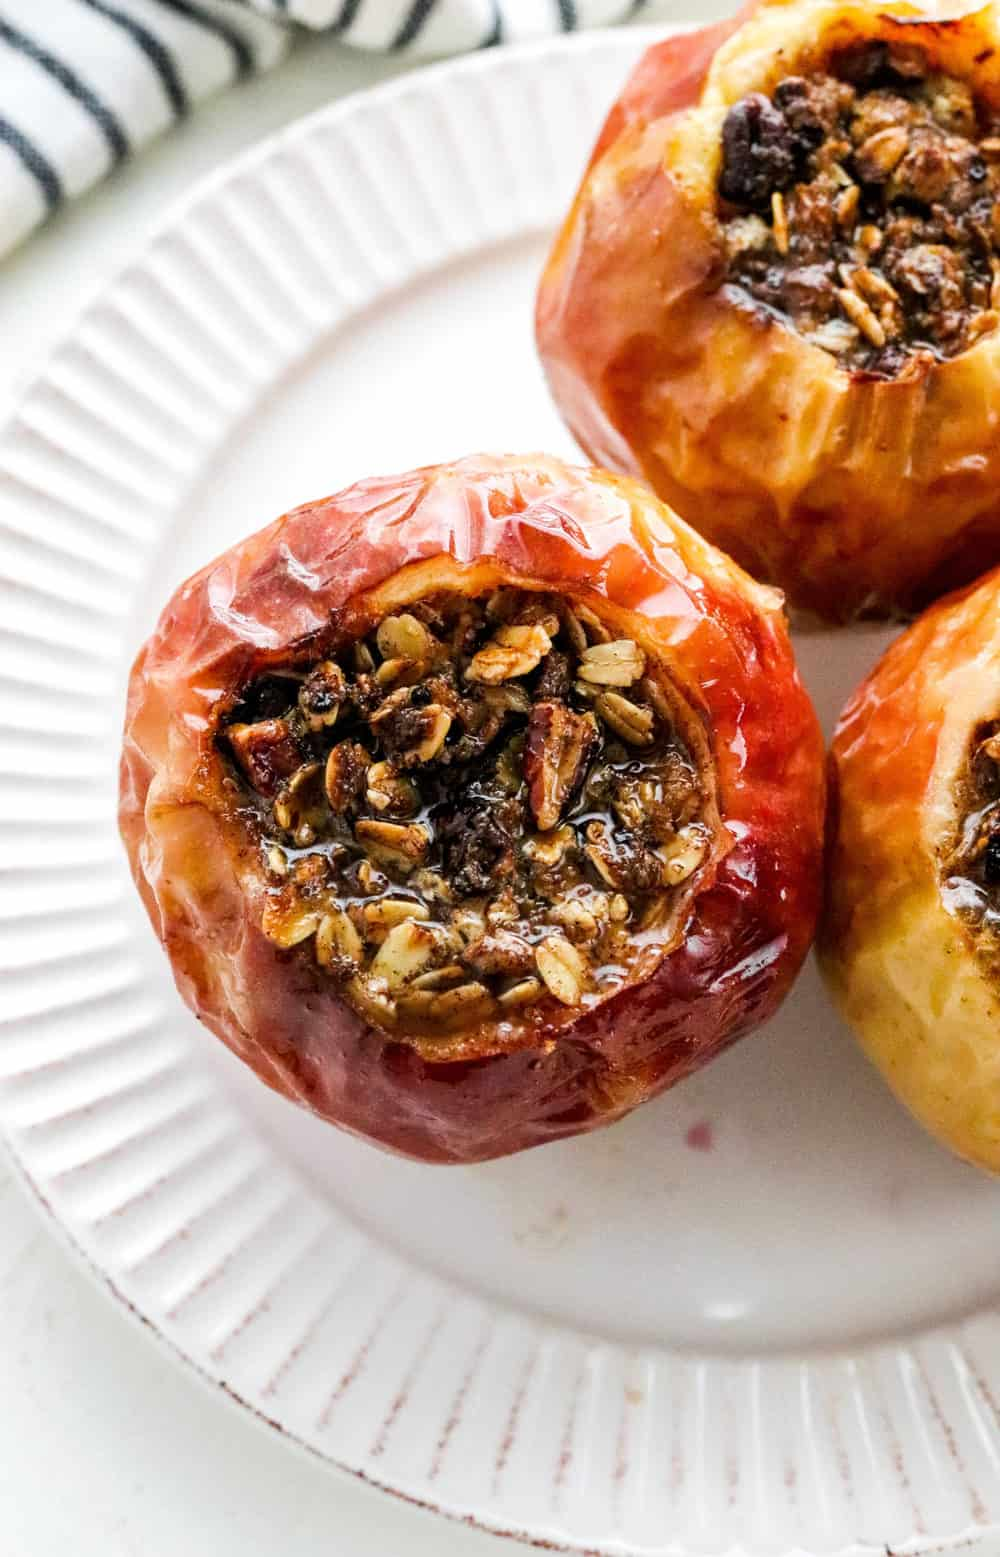 Baked whole red apple filled with an oat and pecan crumble that is golden brown with more filled baked apples next to it on a round white plate on a white counter.